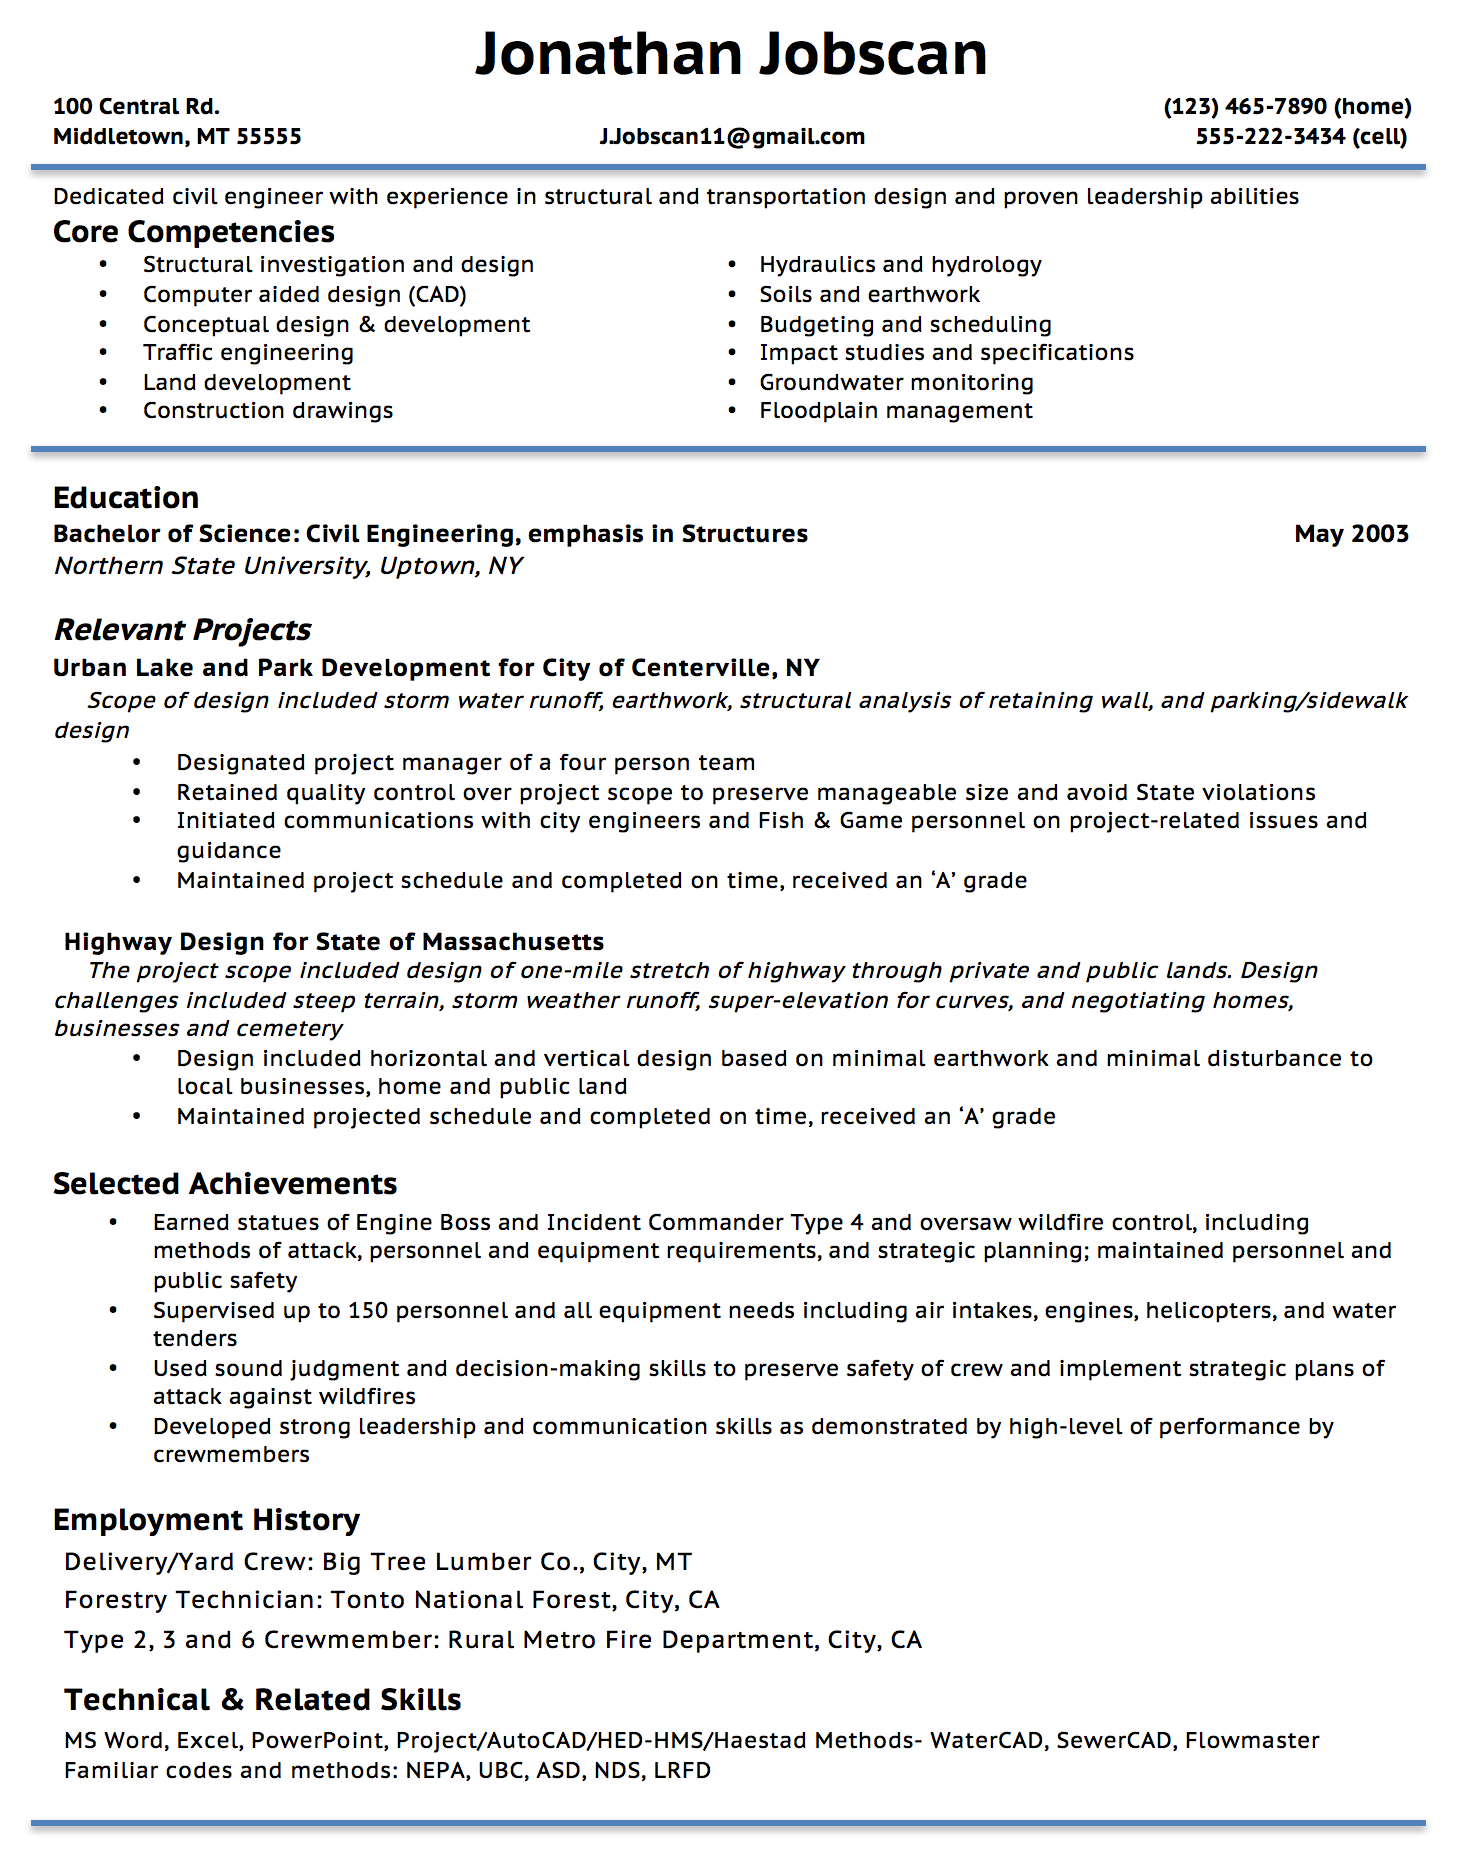 Opposenewapstandardsus  Pleasant Resume Writing Guide  Jobscan With Lovable Example Of A Functional Resume Format With Beautiful It Support Specialist Resume Also Resume Templates Google Drive In Addition Technical Writer Resume Sample And How Create A Resume As Well As Psychology Resume Sample Additionally Teach For America Resume From Jobscanco With Opposenewapstandardsus  Lovable Resume Writing Guide  Jobscan With Beautiful Example Of A Functional Resume Format And Pleasant It Support Specialist Resume Also Resume Templates Google Drive In Addition Technical Writer Resume Sample From Jobscanco